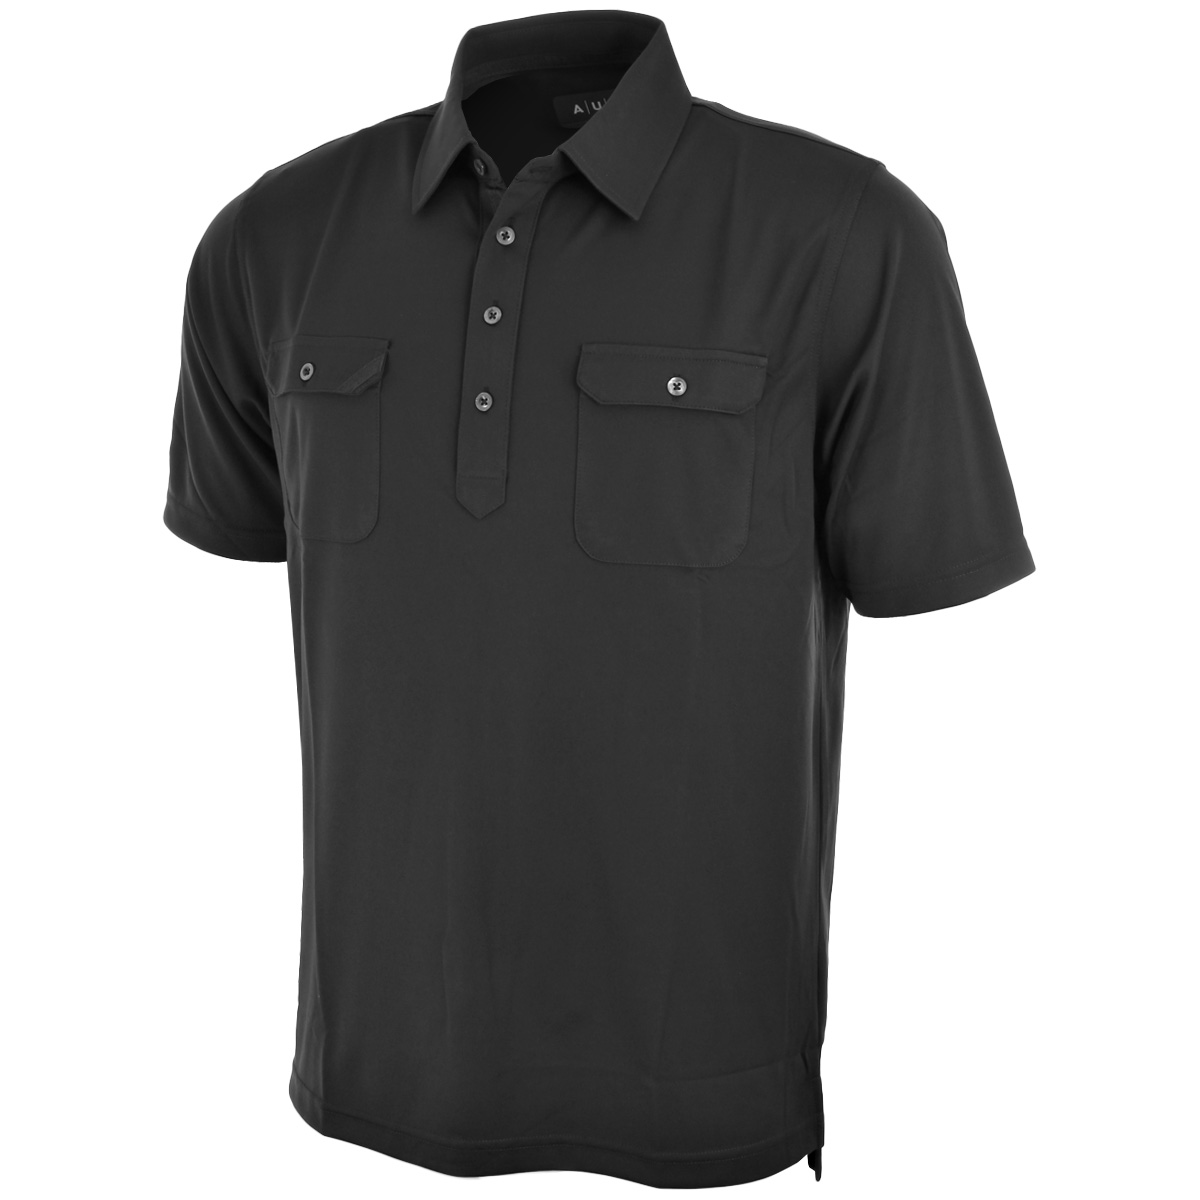 Aur golf mens s cafe double chest pocket golf polo shirt for Two pocket polo shirt